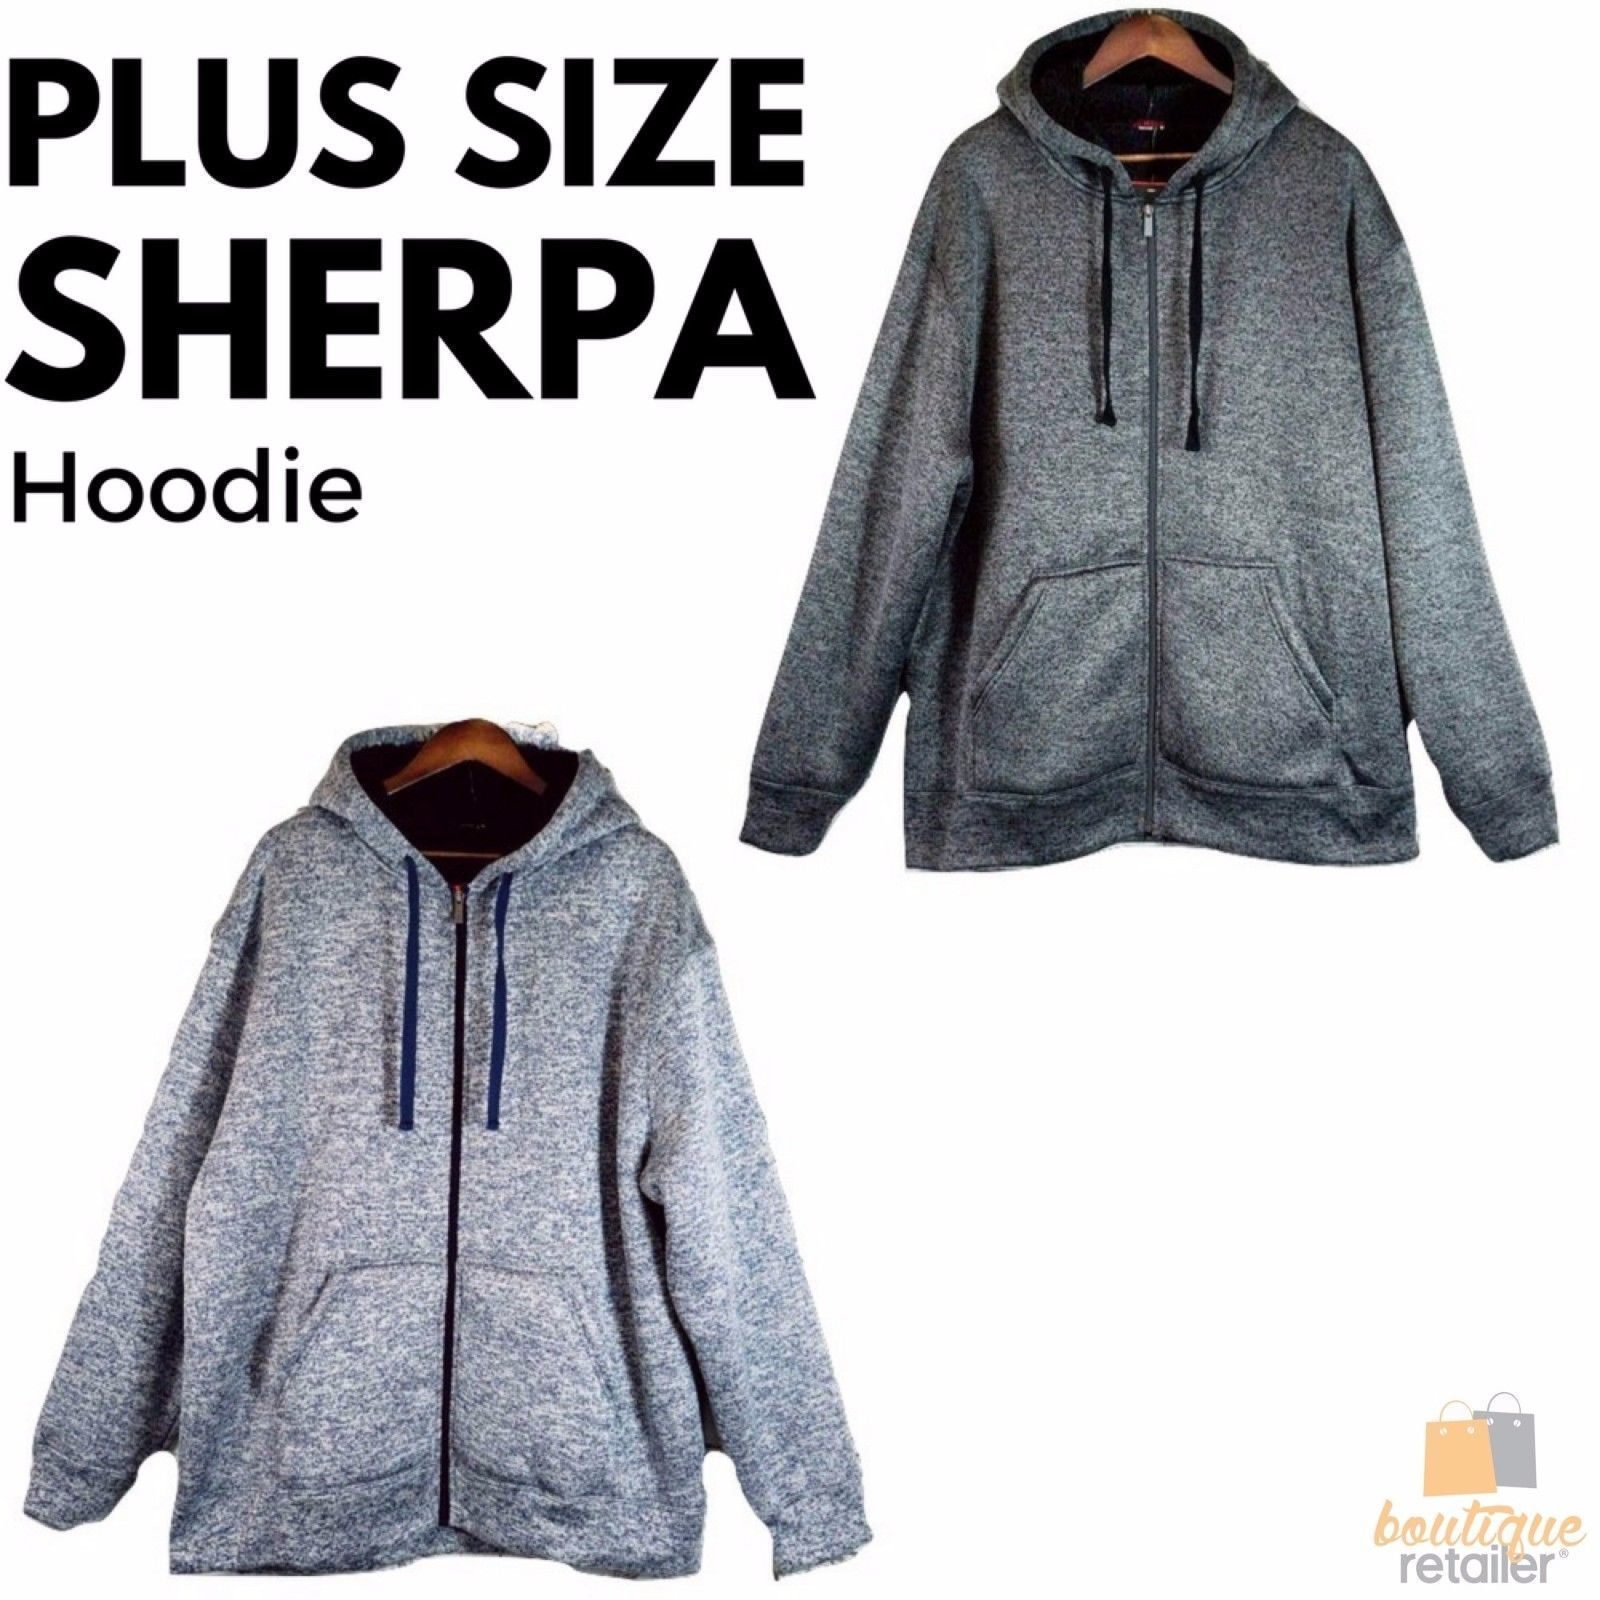 24eb5b03a4b h m s Remaining. MENS PLUS SIZE SHERPA JACKET Big King Lined Fleece Coat  Winter ...